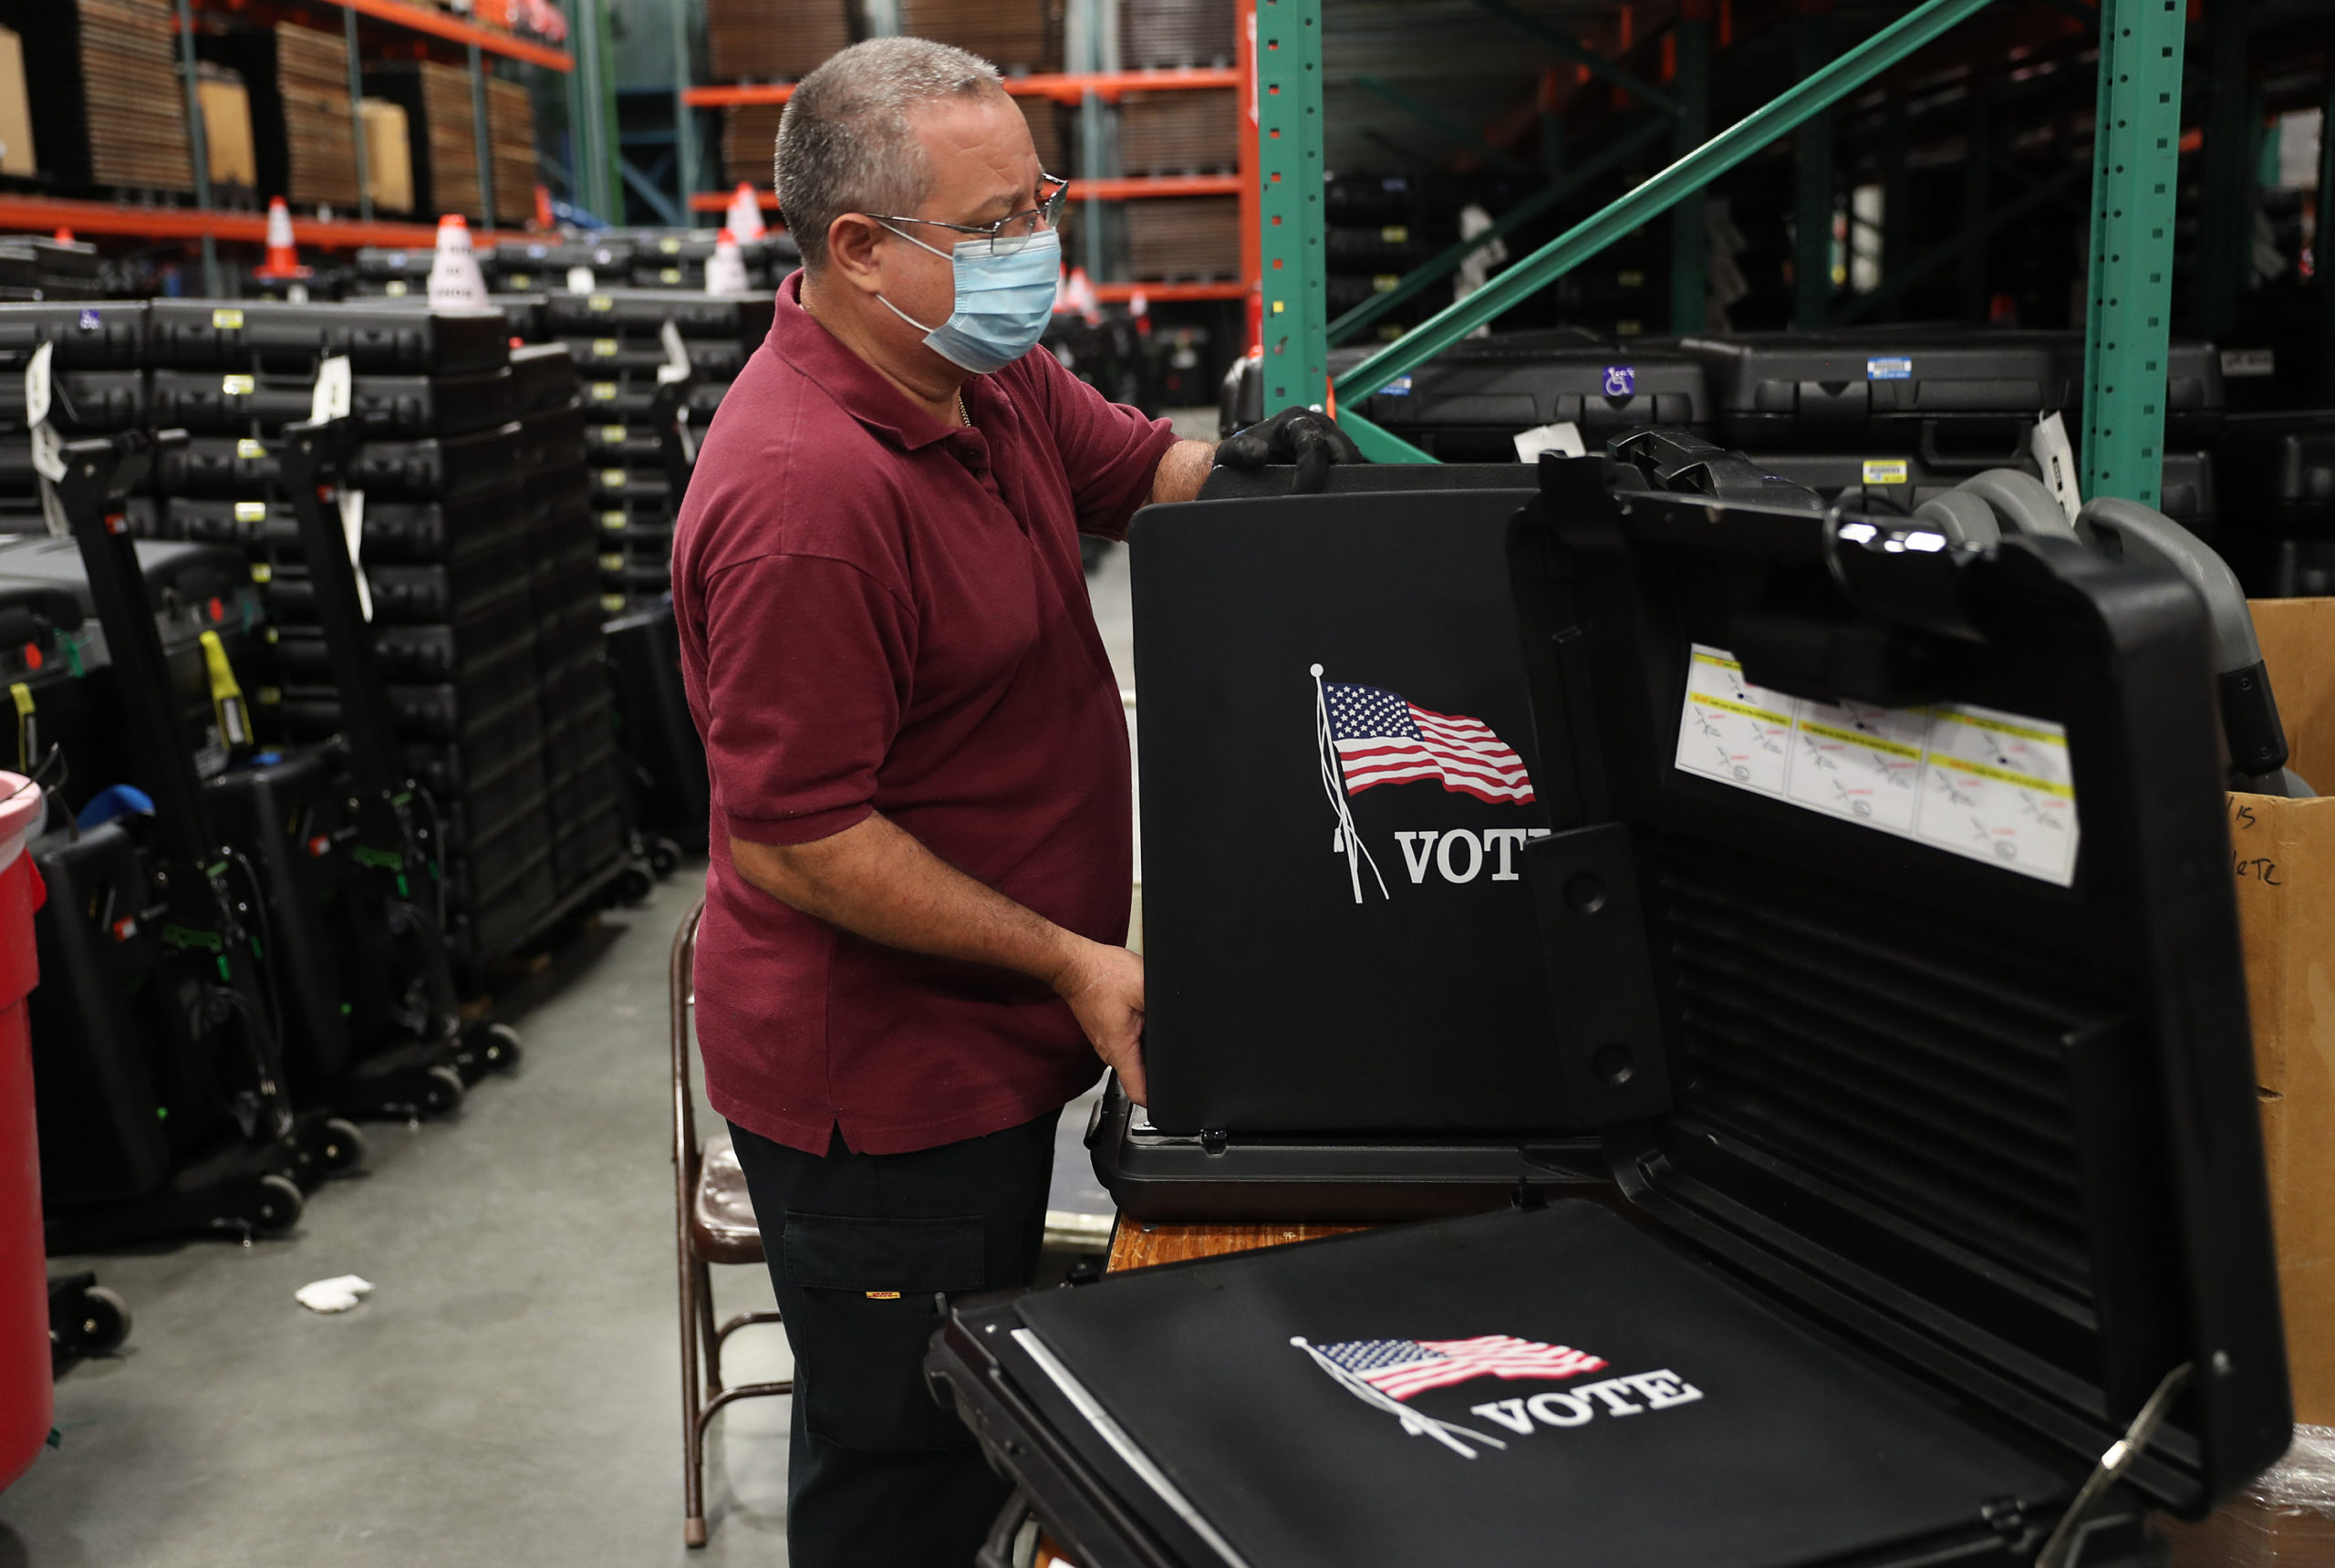 DORAL, FLORIDA - OCTOBER 01: A worker at the Miami-Dade County Election Department prepares a voting booth to be used in the general election on October 01, 2020 in Doral, Florida. The Miami-Dade County Elections Department mailed out via the U.S. Post Office more than 530,000 vote-by-mail ballots to voters with a request on file for the November 3, 2020 General Election. (Photo by Joe Raedle/Getty Images)